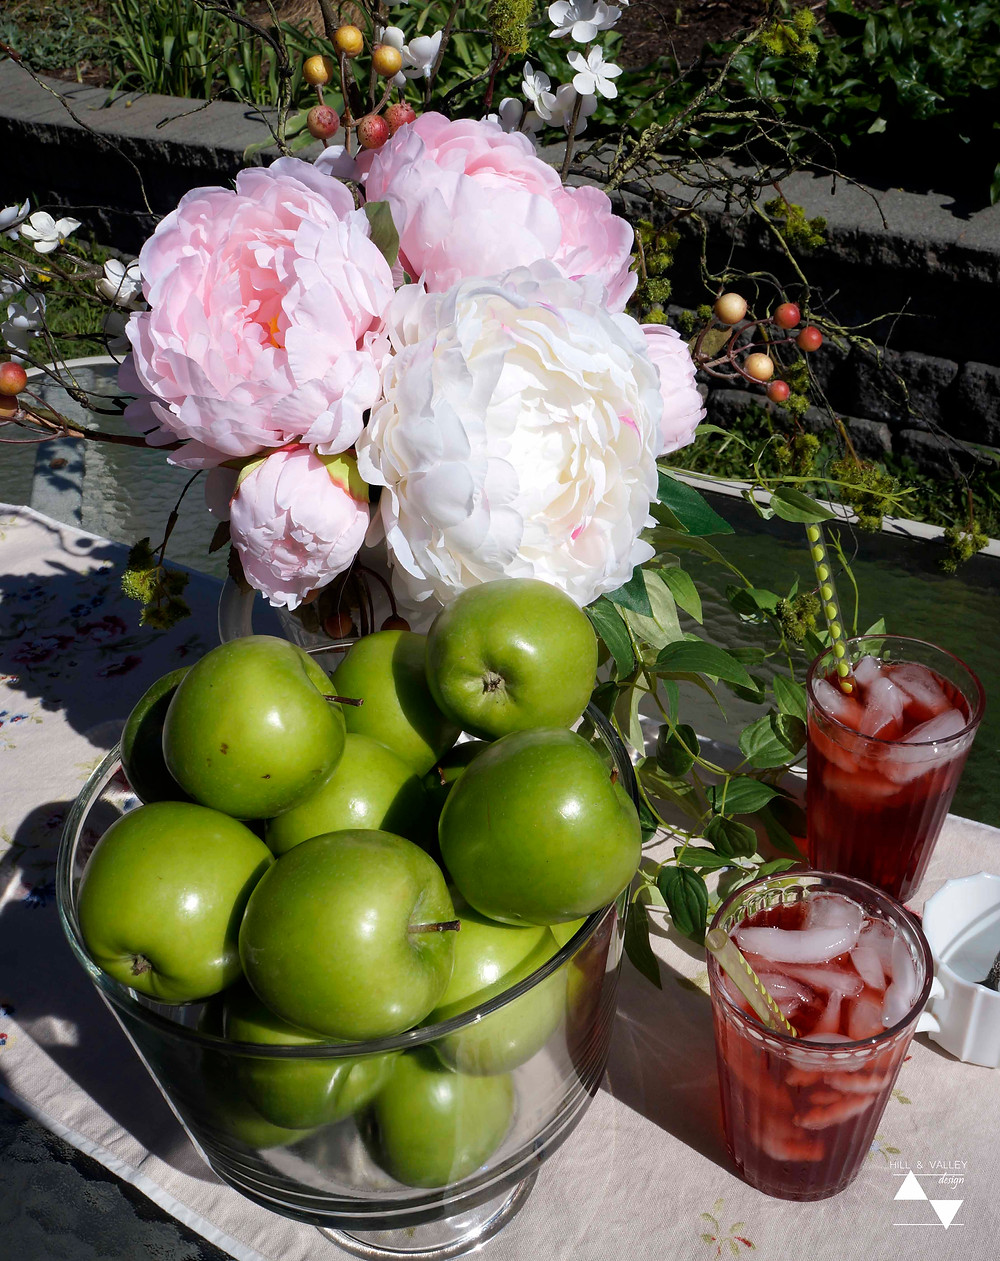 Flowers, apples, iced tea on table